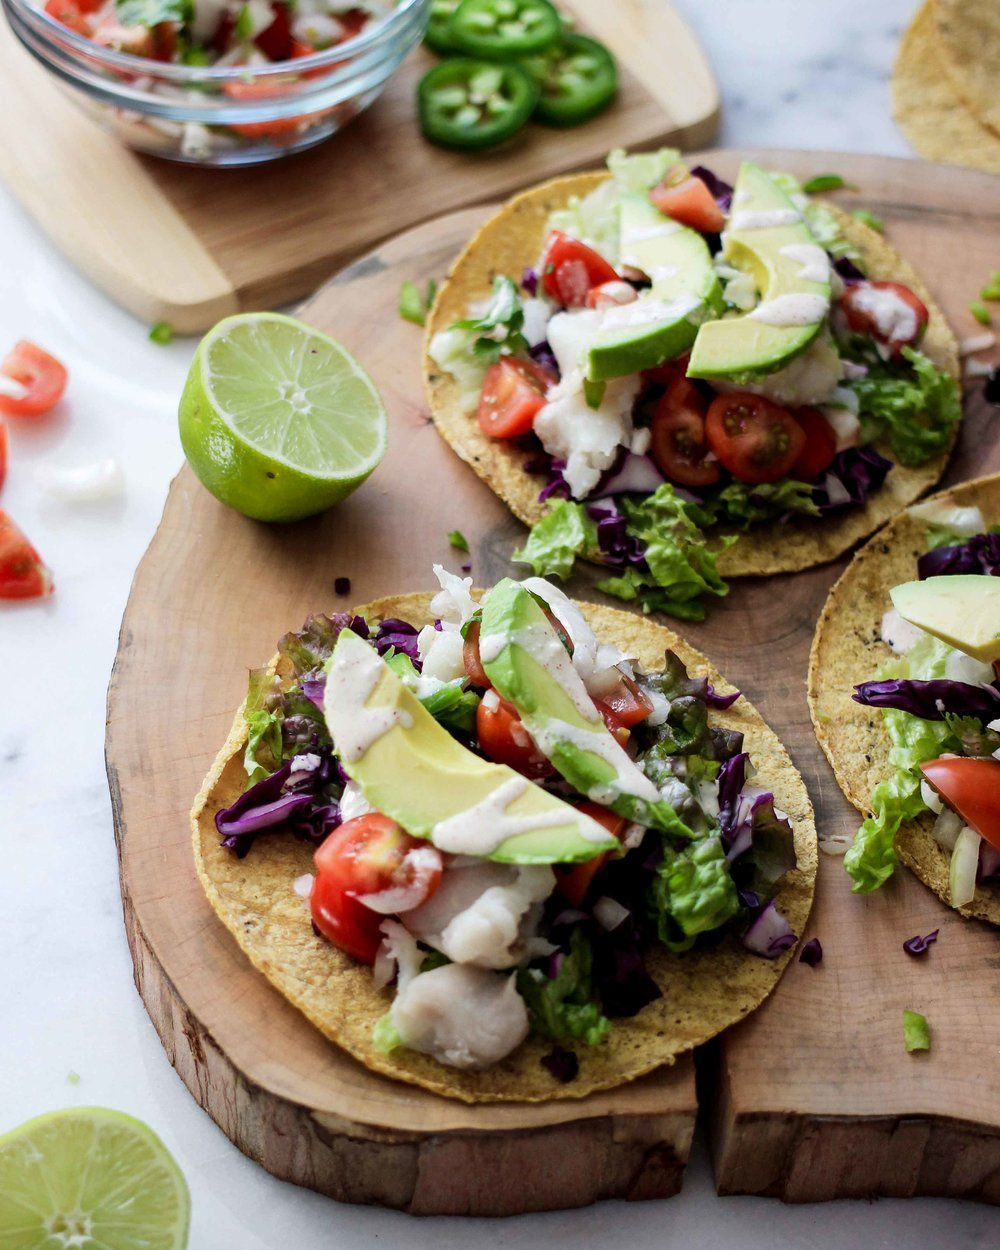 Authentic Mexican Baja California Fish Tacos Recipe With